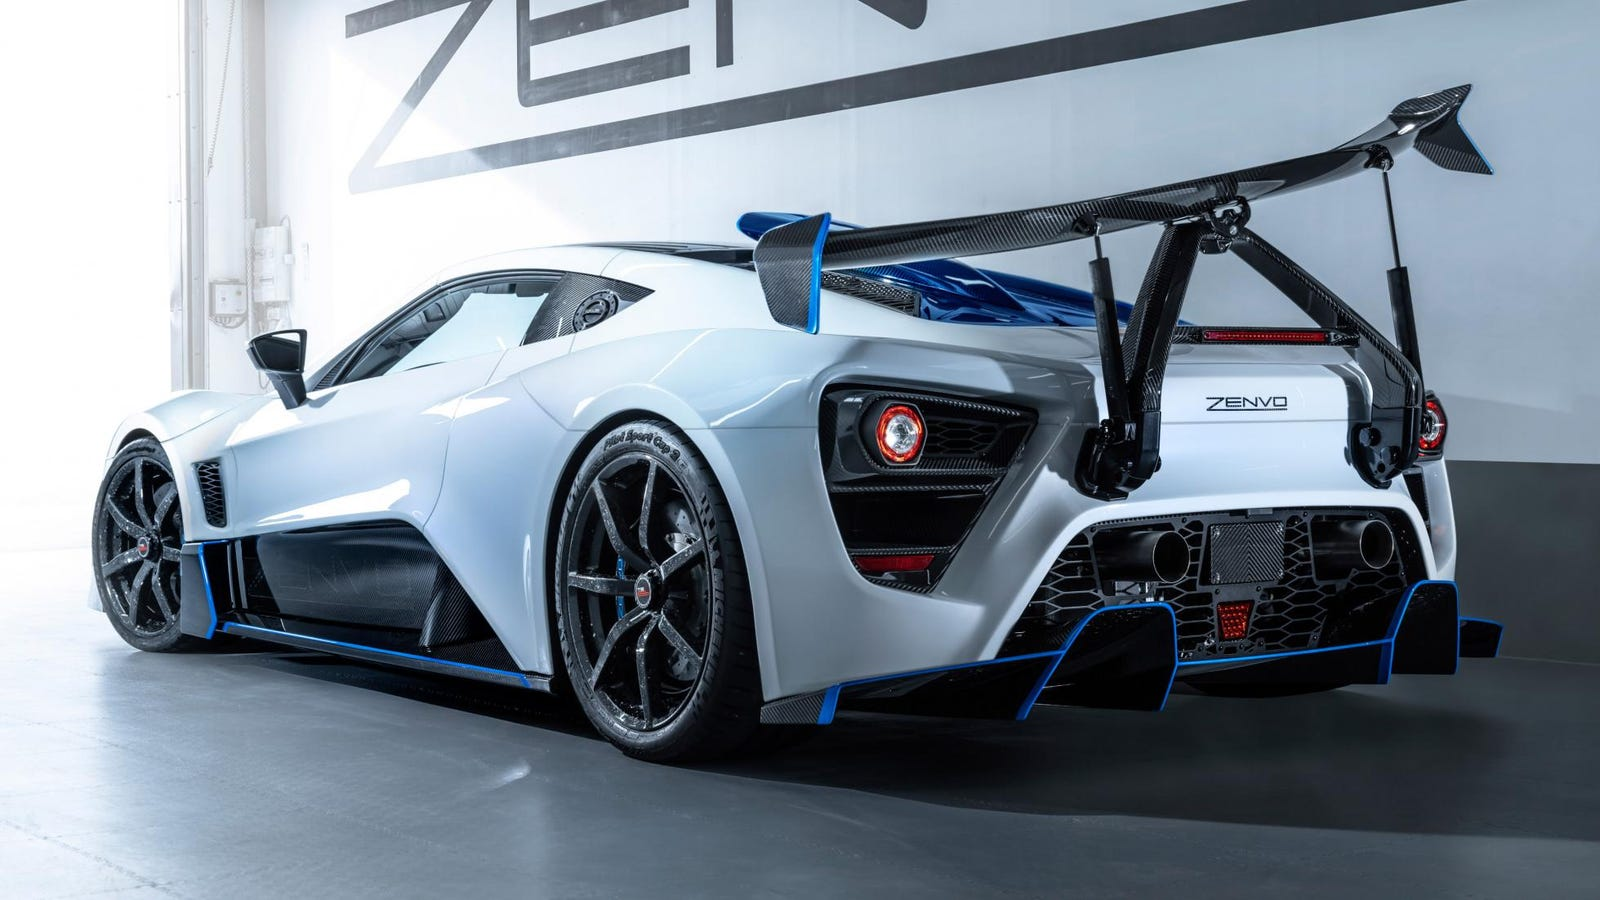 Illustration for article titled The $1.6 Million Zenvo TSR-S Makes Carbon Fiber Seem Special Again